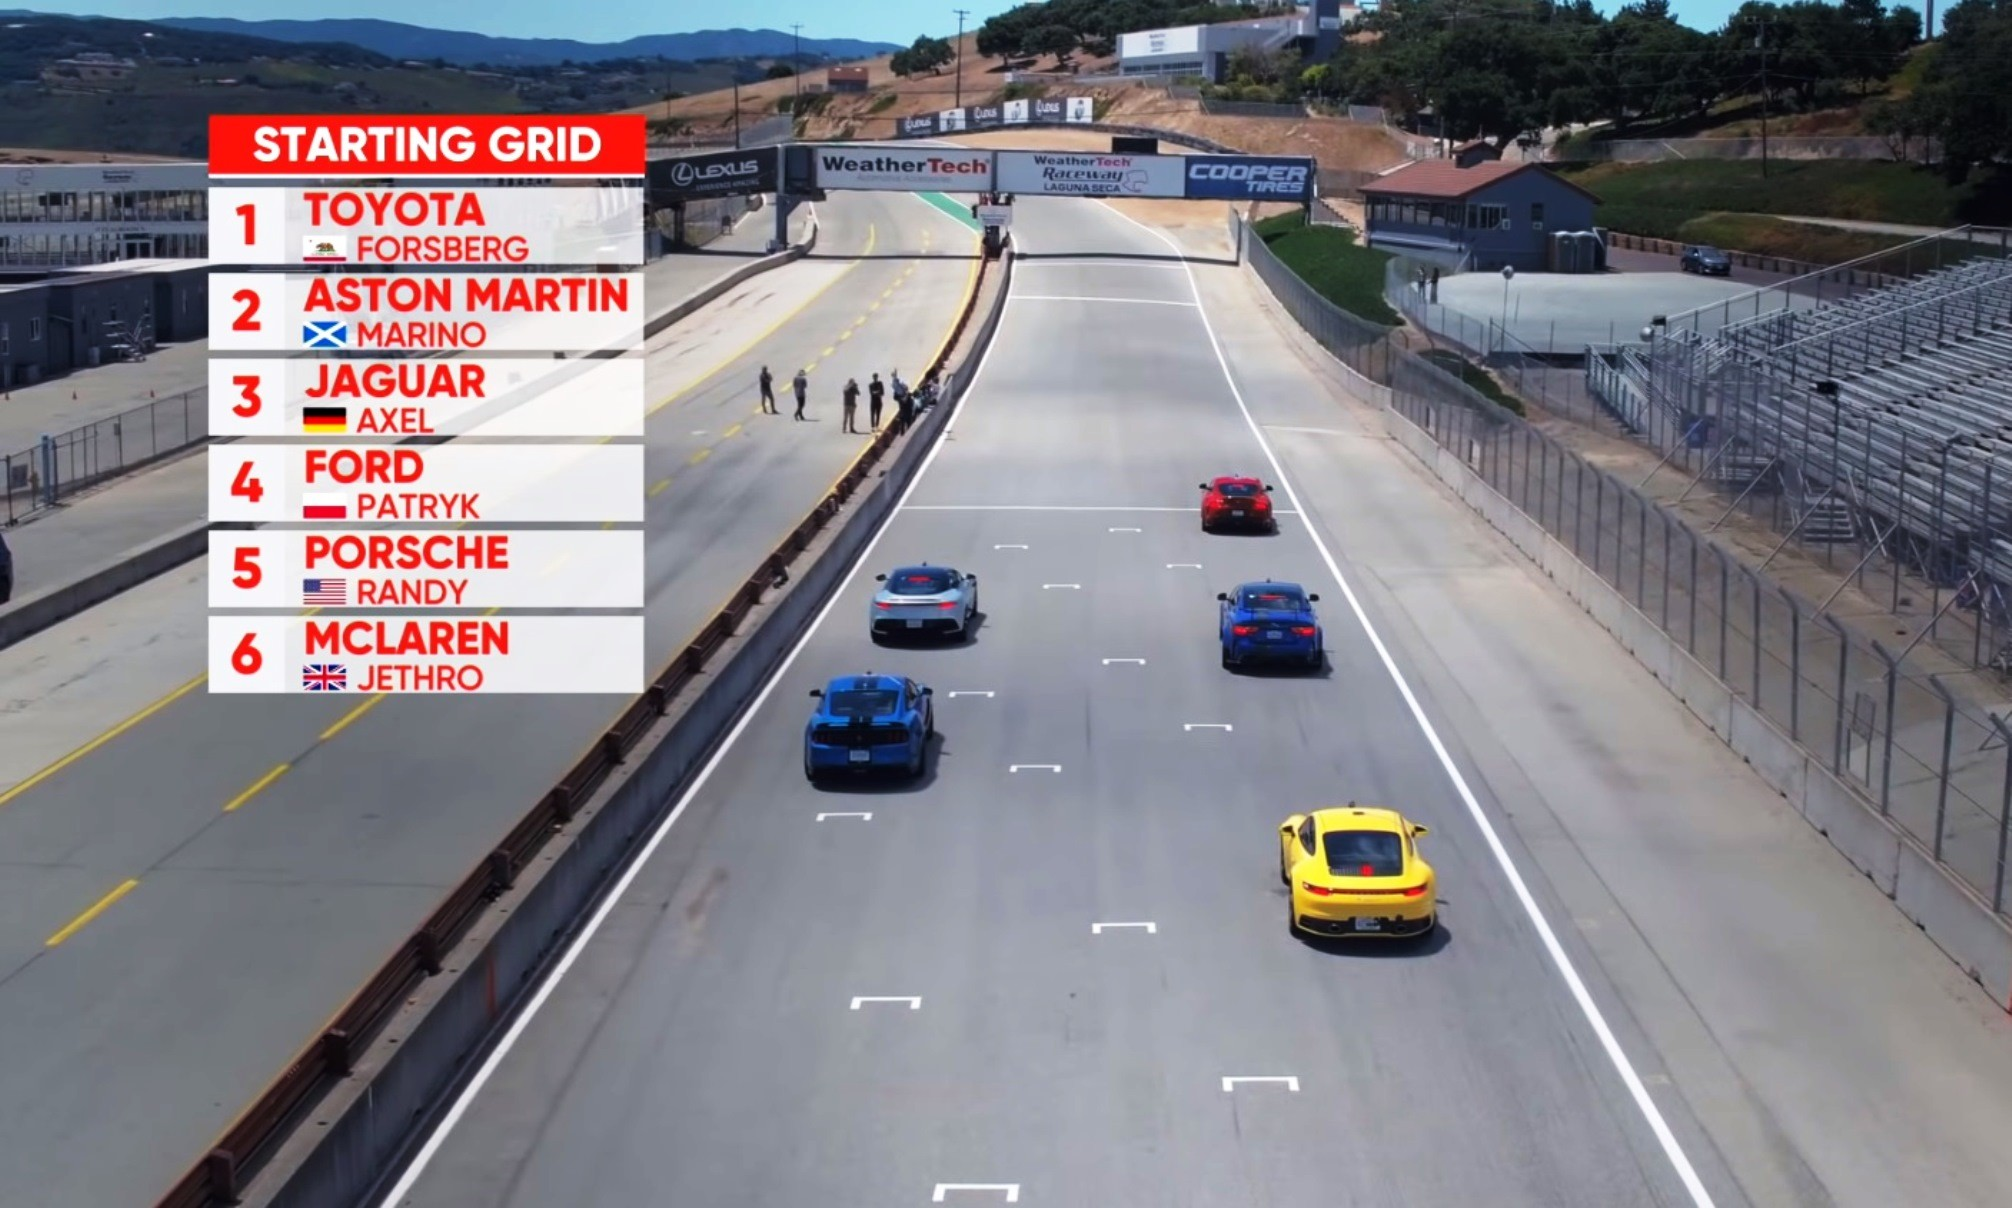 Best Driver's Car GP grid